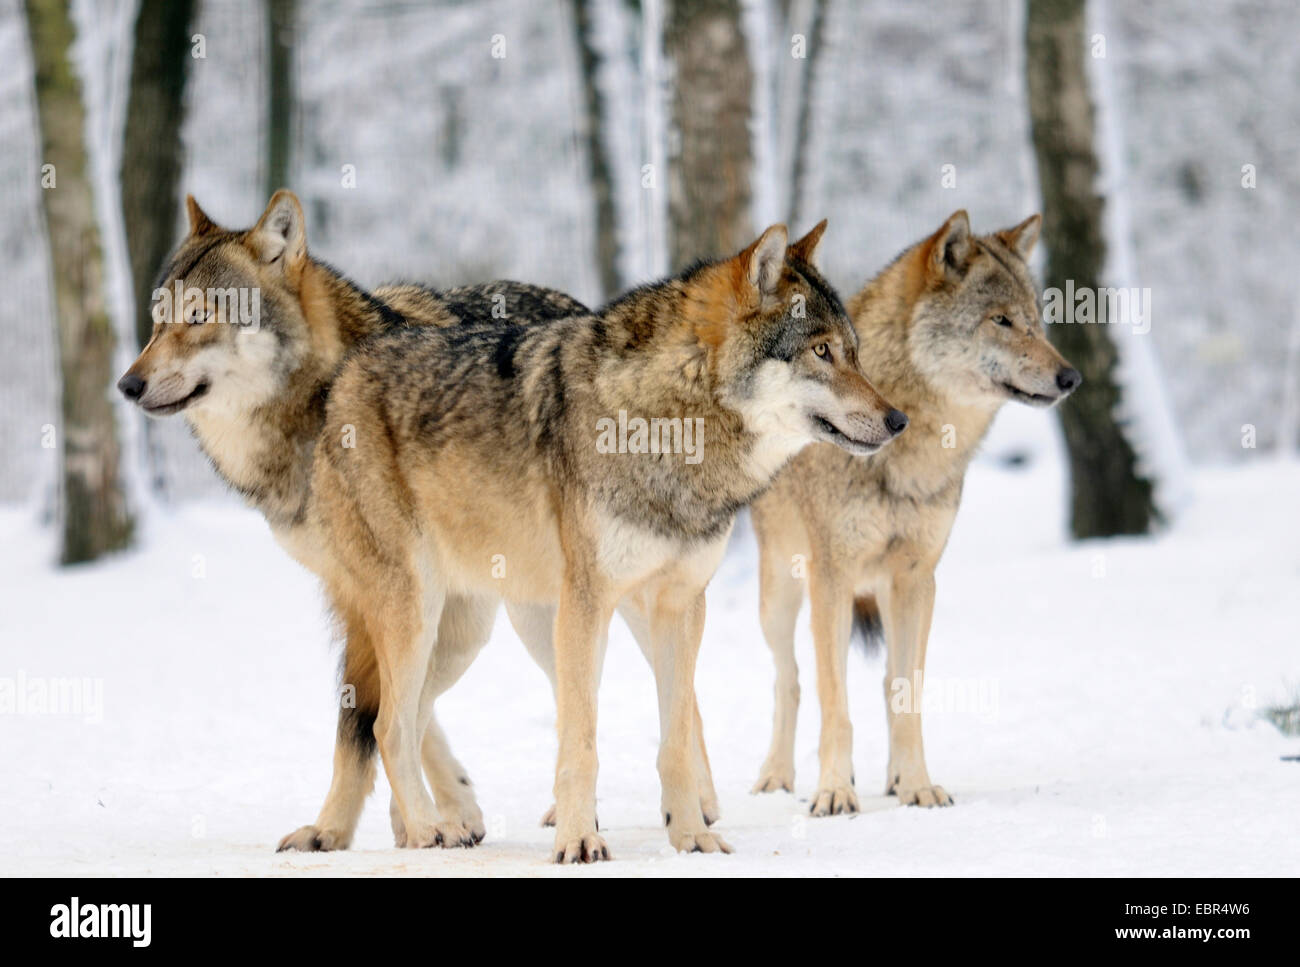 Wolf Germany european wolf canis lupus three wolves in winter landscape stock